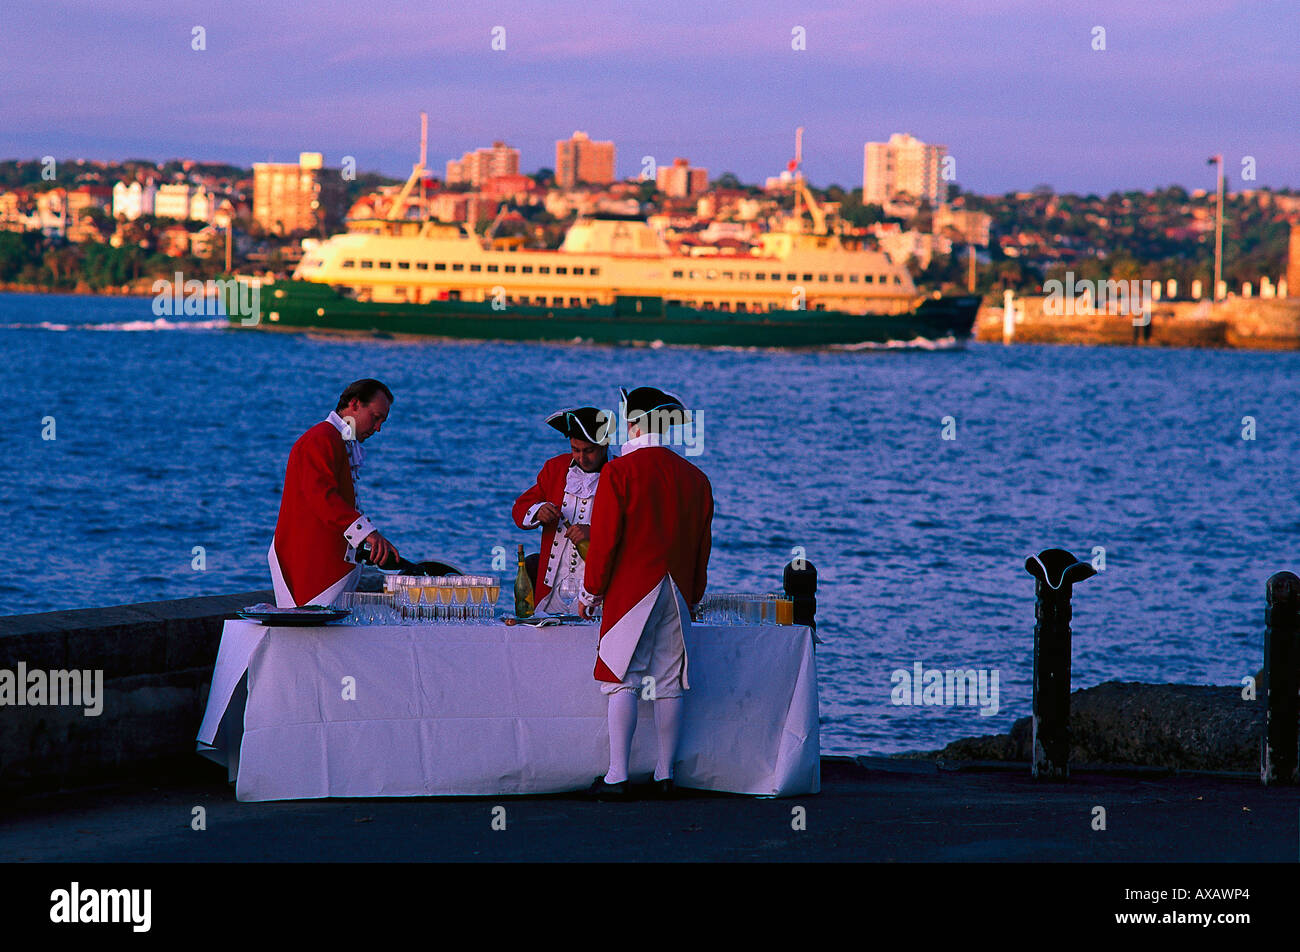 Empfang, Mrs. Macquaries, Sydney, NSW Australien - Stock Image